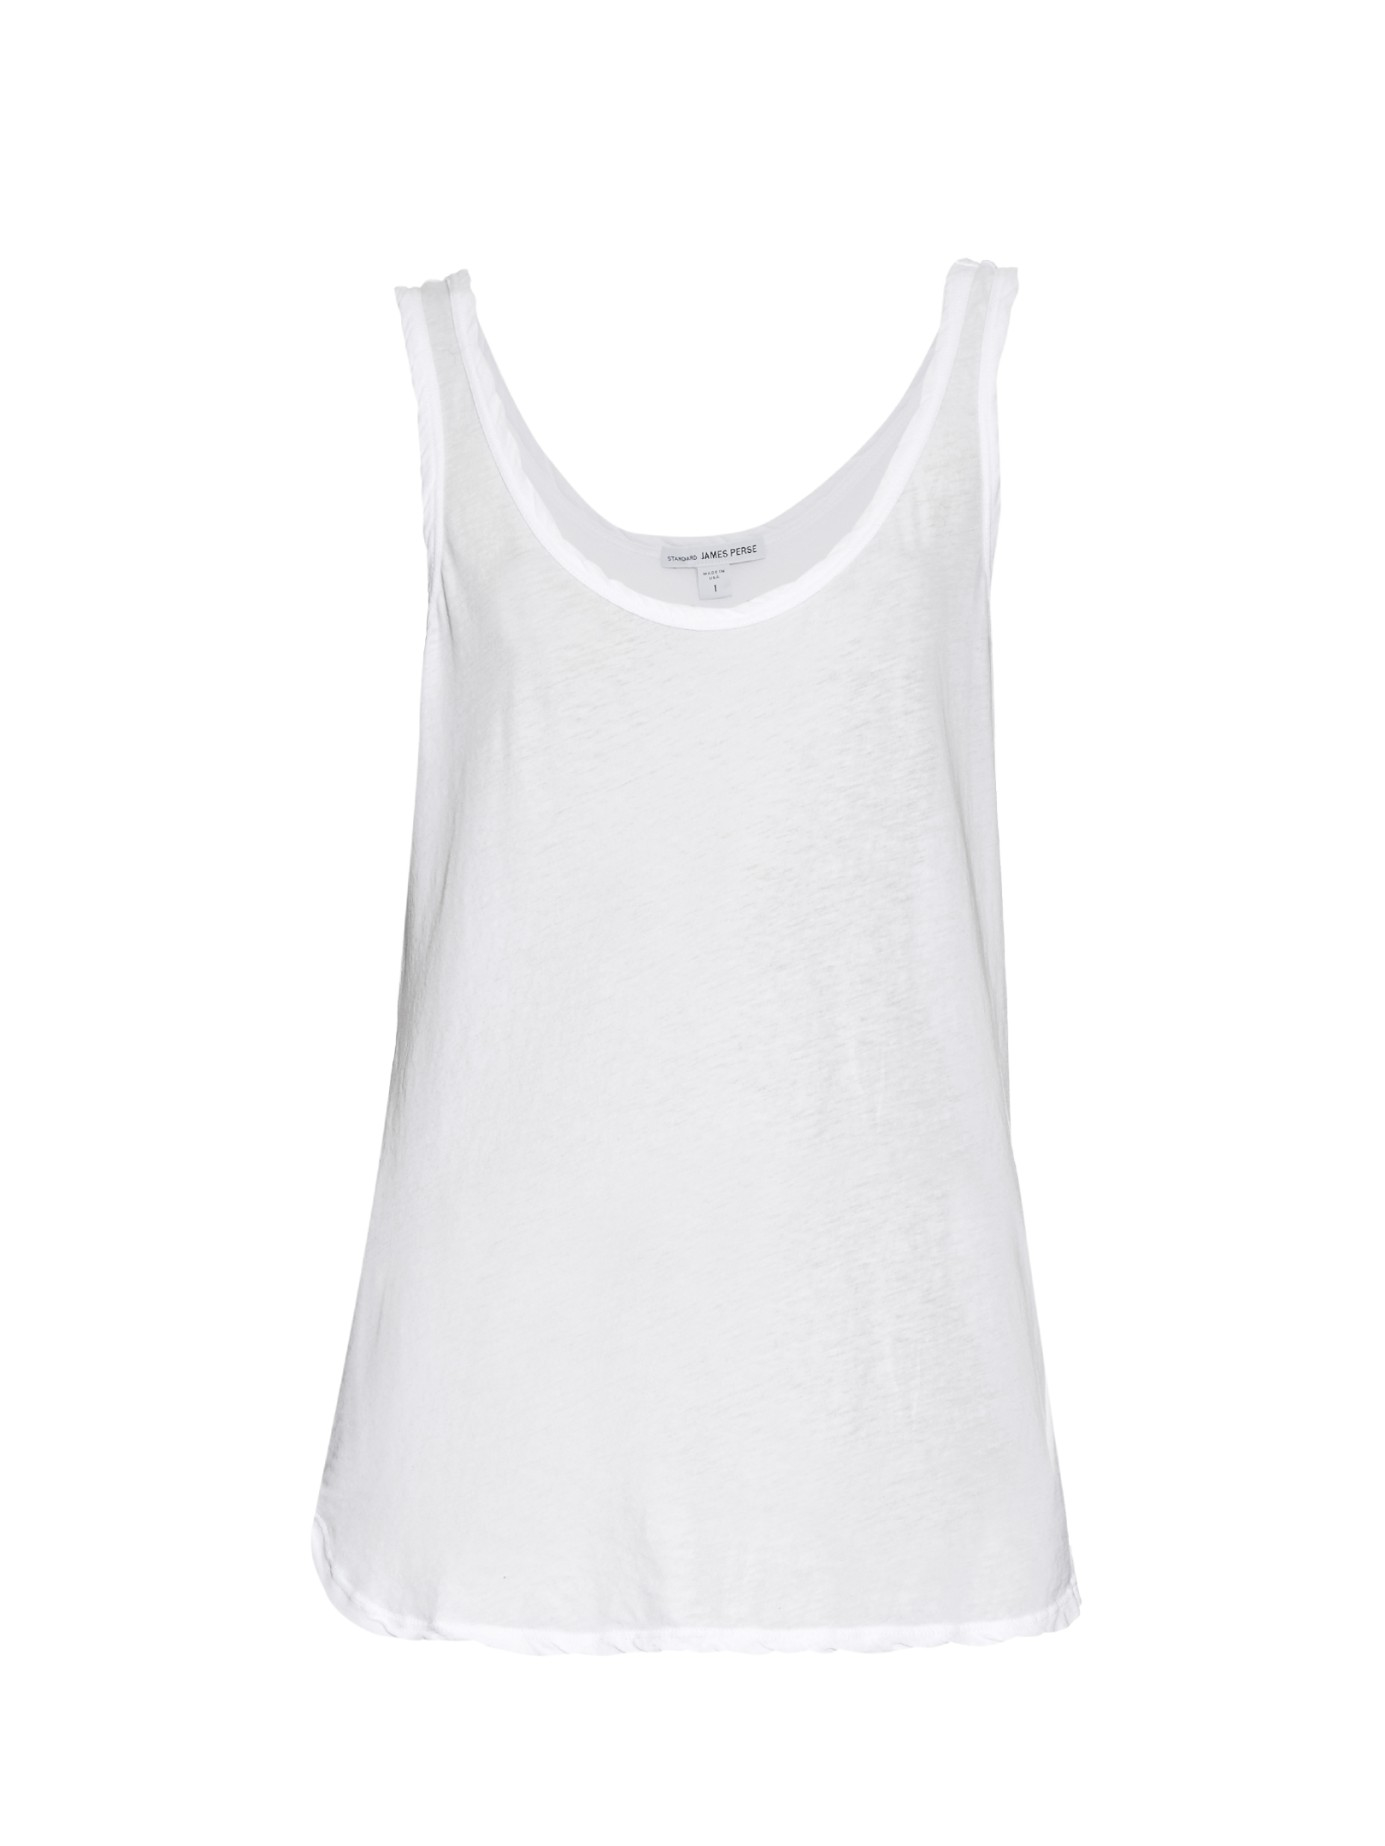 Cheap Sale High Quality White cotton tank top James Perse Sale Clearance Store Geniue Stockist Online Genuine Online Outlet Order Online LpQ0xw